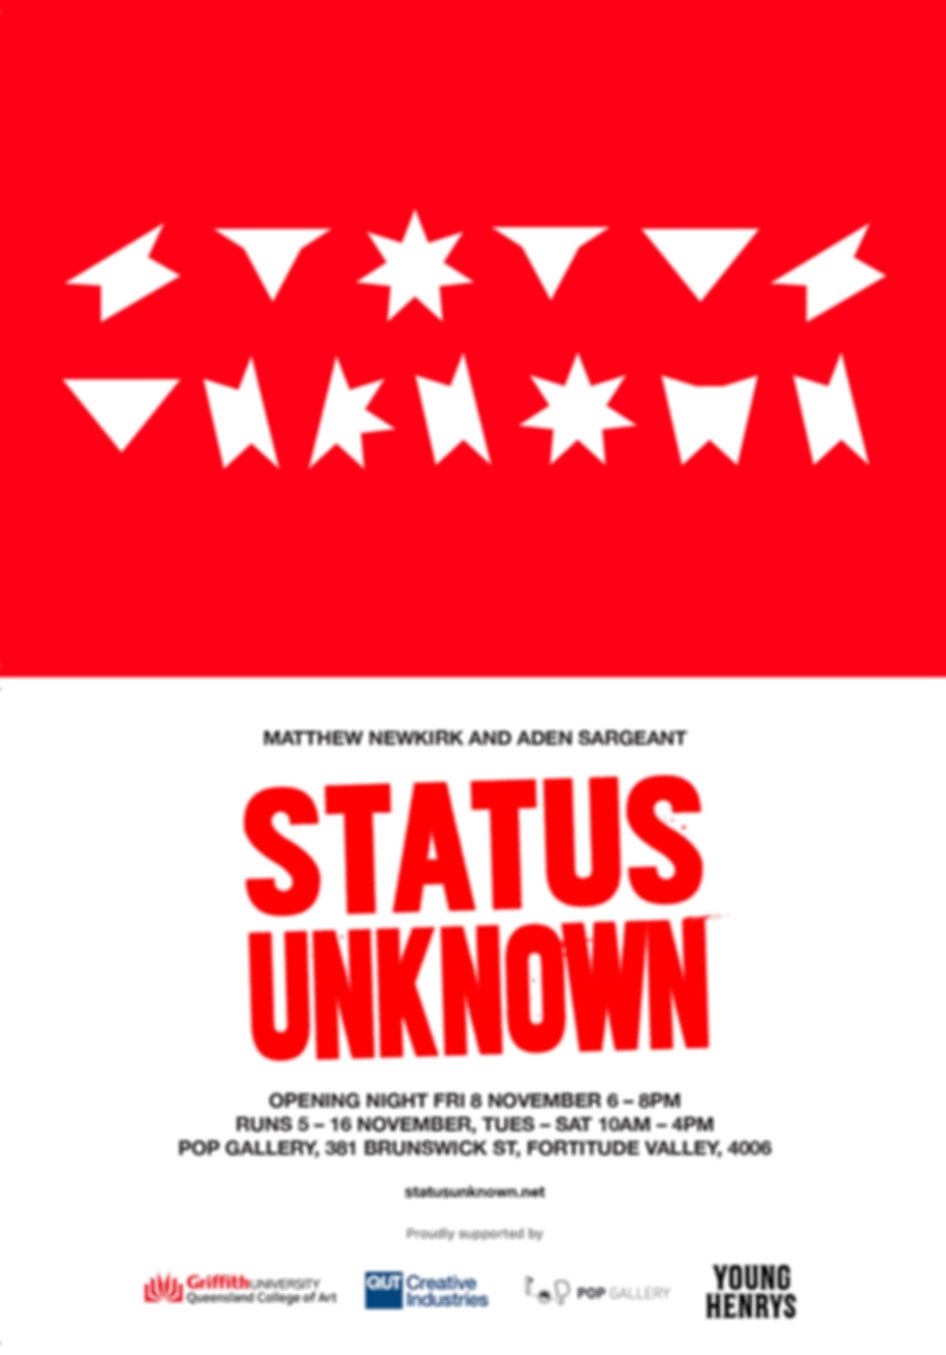 Matthew Newkirk - STATUS UNKNOWN Invite.